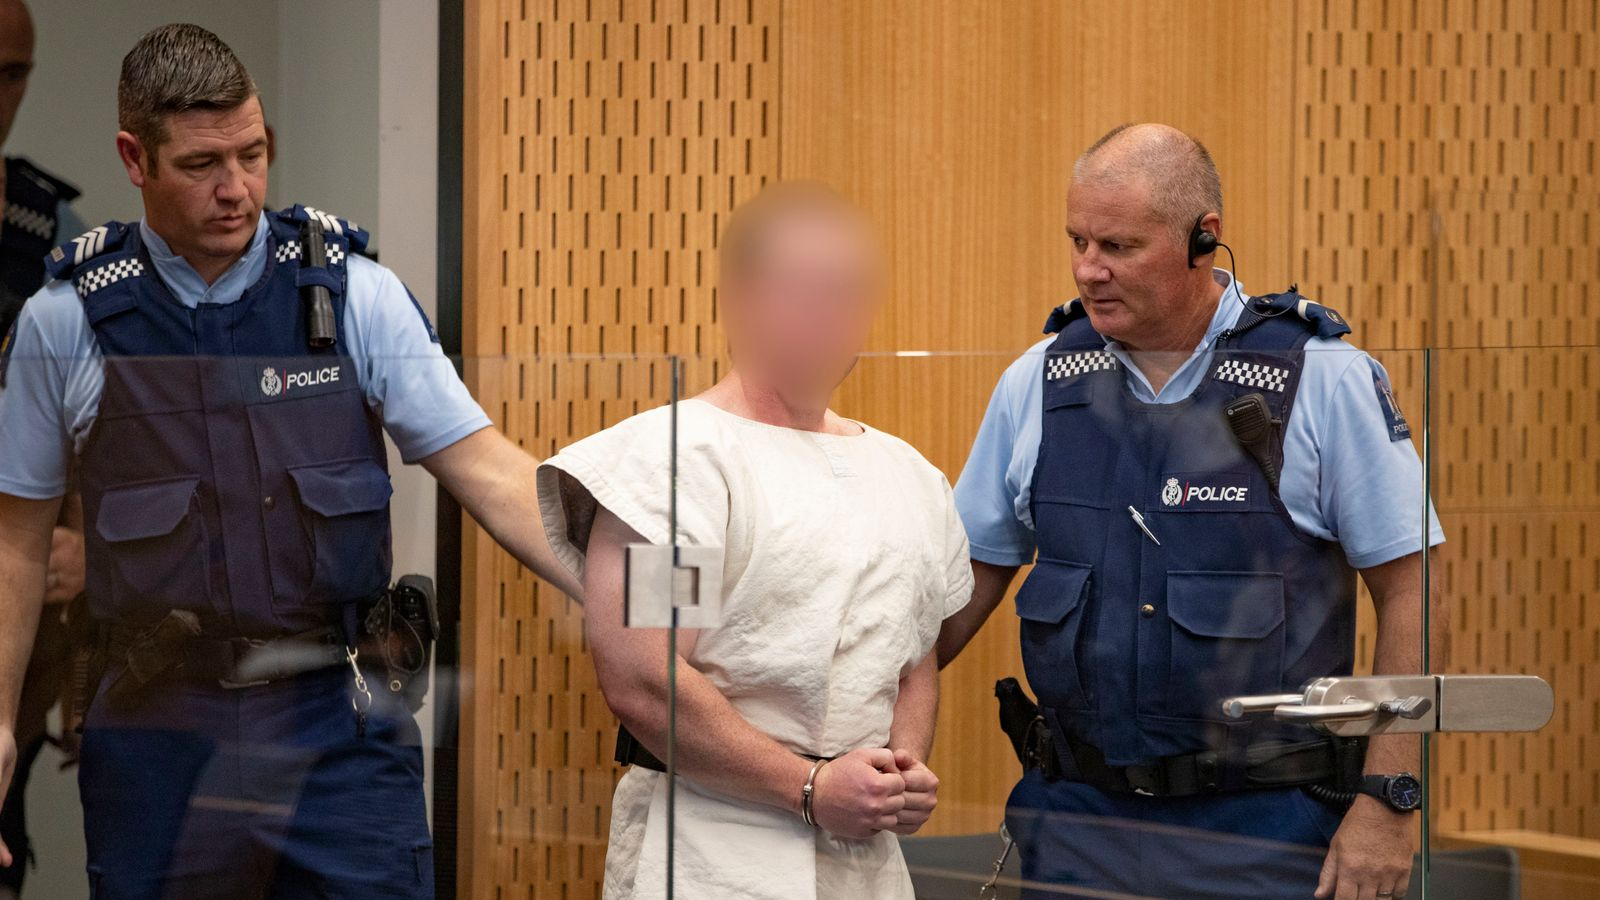 New Zealand Attack Video Photo: New Zealand Mosque Shootings: Suspect's Manifesto Sent To